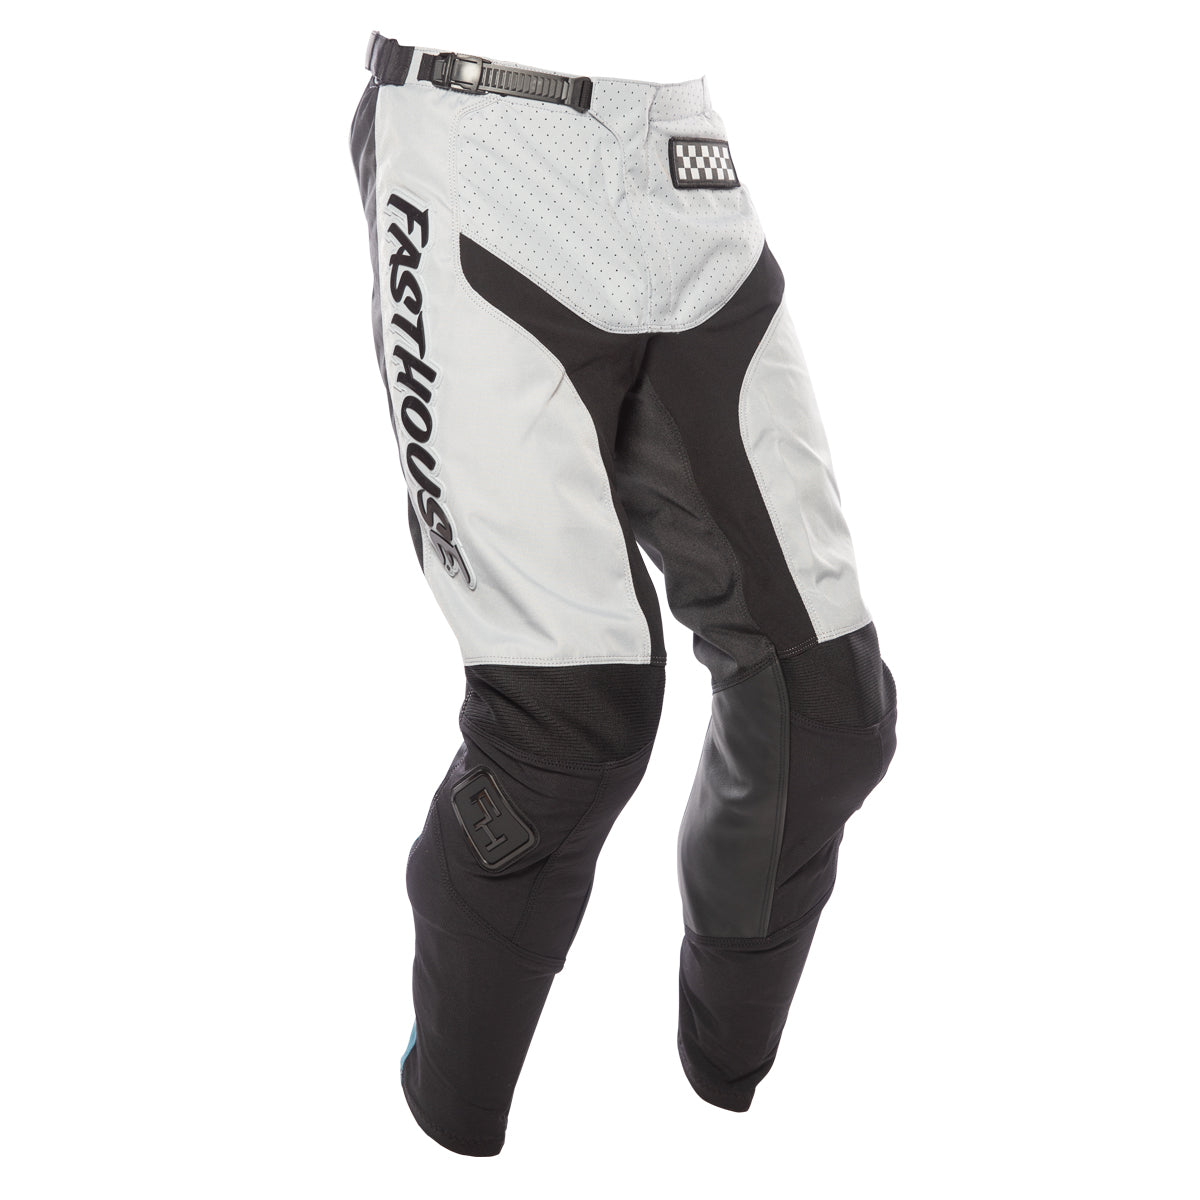 Grindhouse 2.0 Pant - Silver/Black